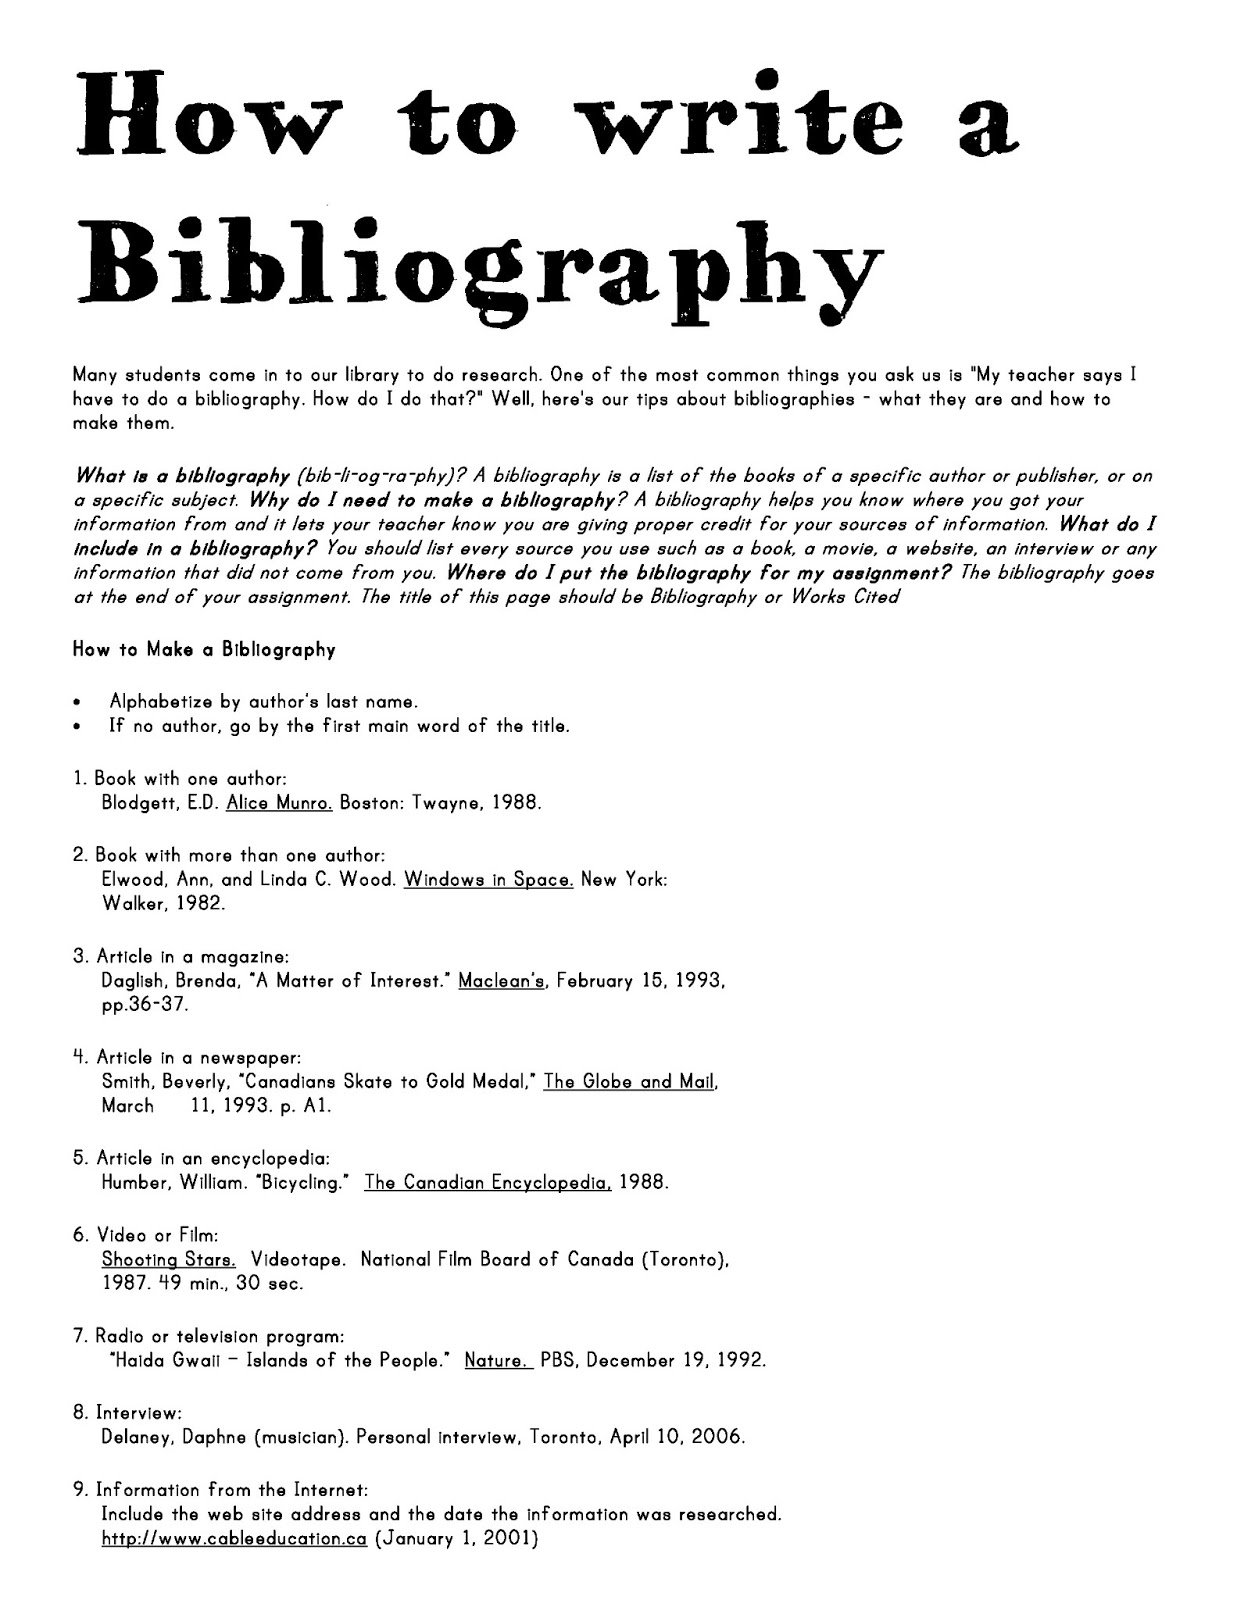 Bibliography examples png black and white bibliography paper - essay bib annotated bibliography essay ... png black and white